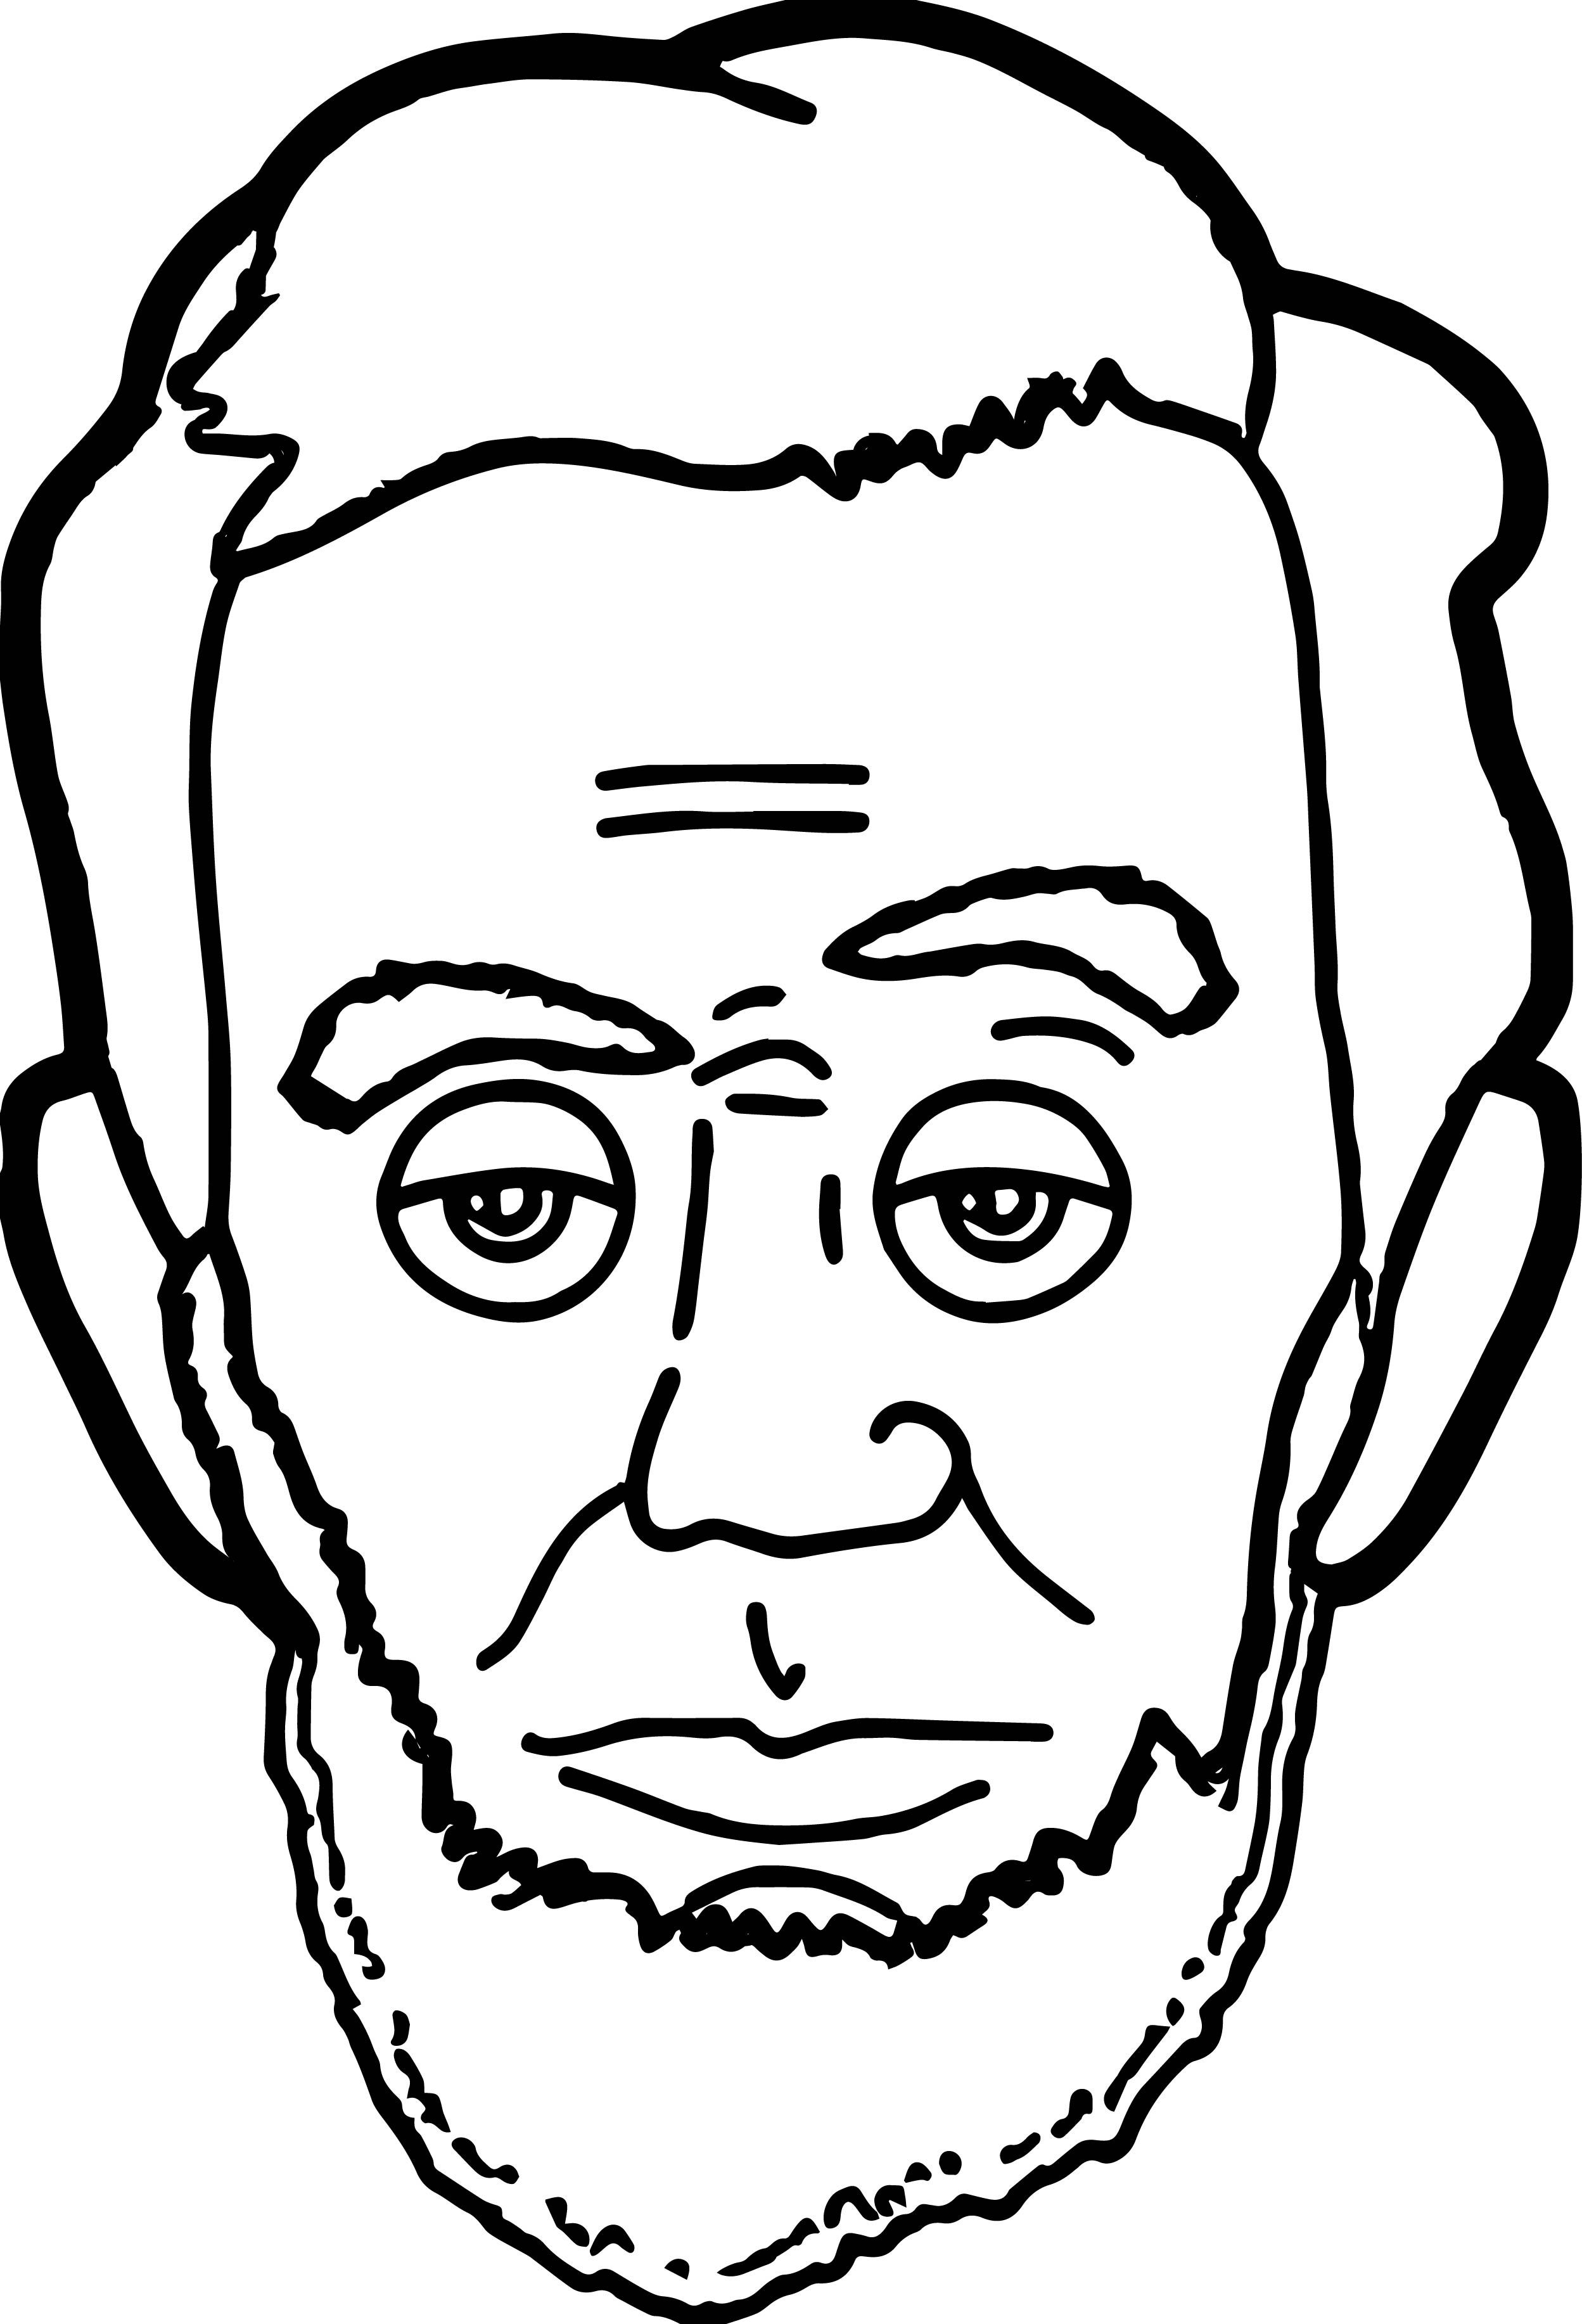 Nice Abraham Lincoln President Face Coloring Page Monster Coloring Pages Cartoon Coloring Pages Coloring Pages Inspirational